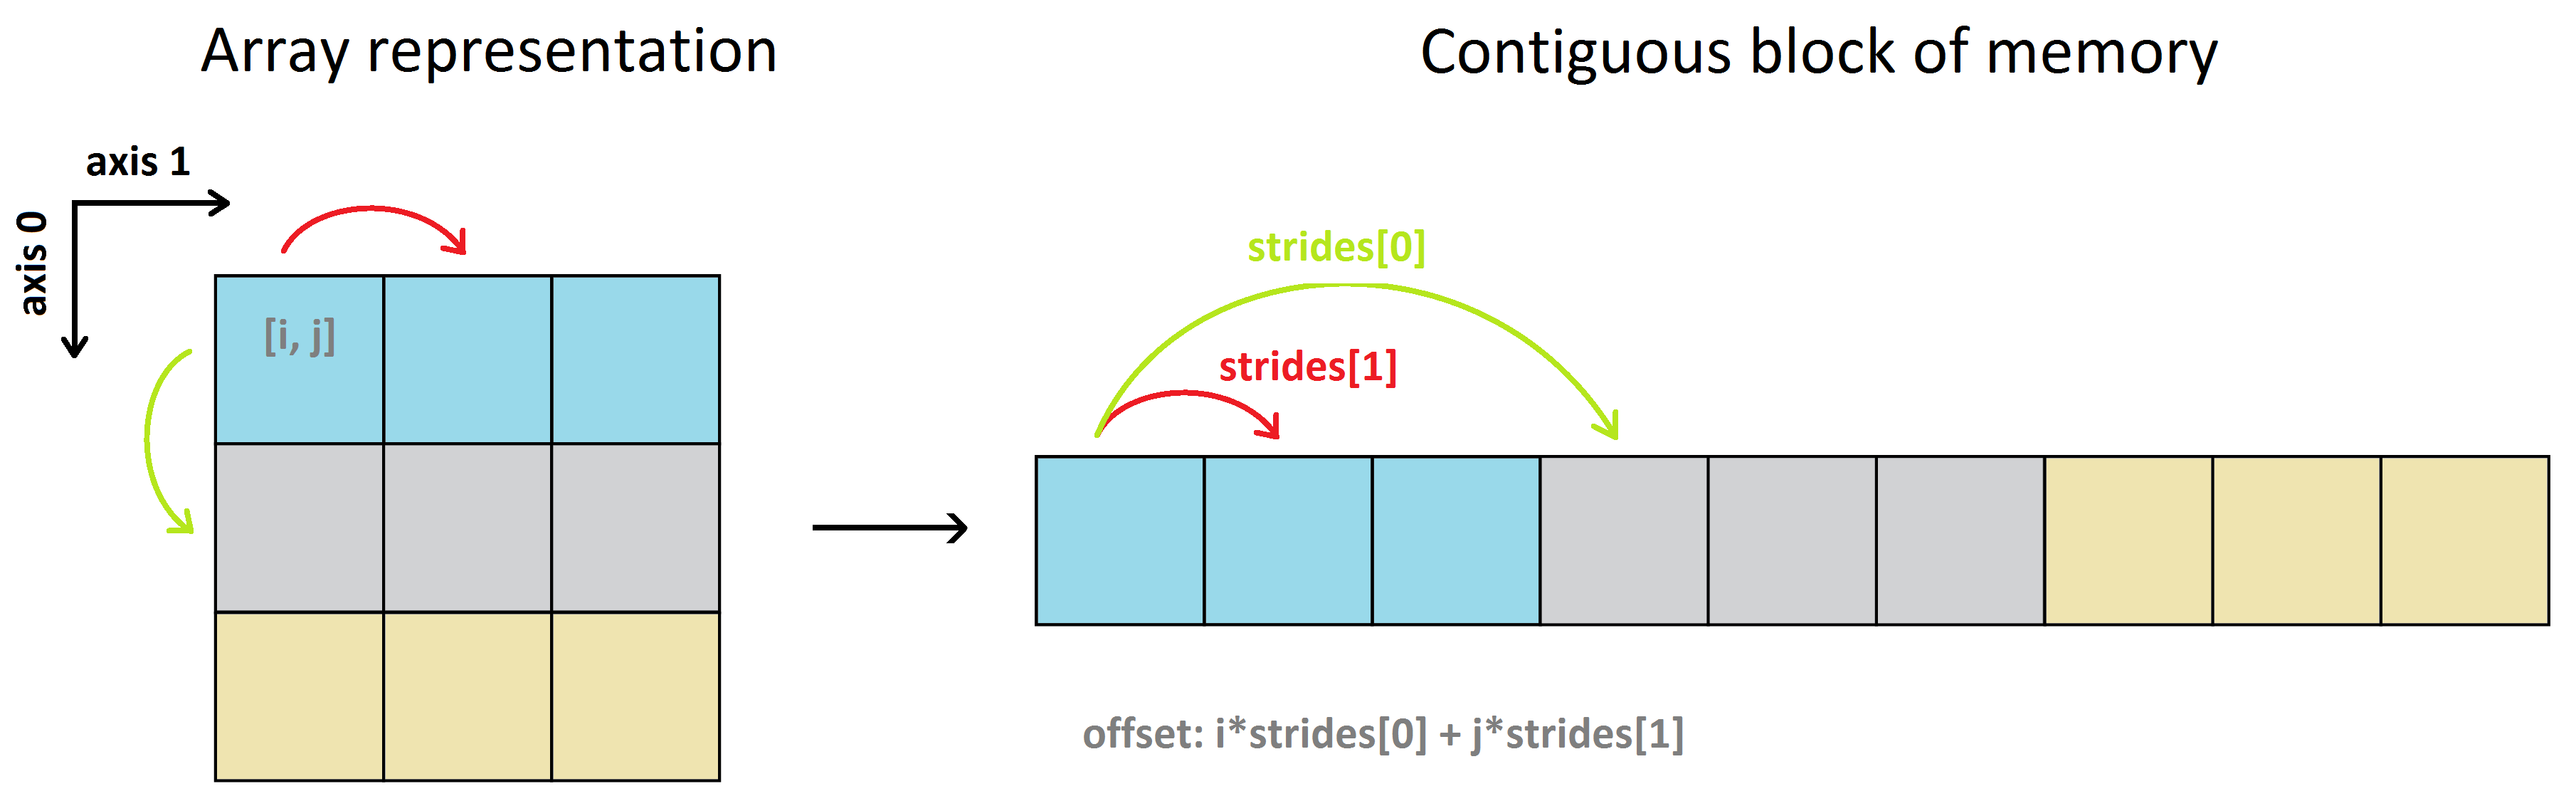 shape_and_strides.png.b64c5b34e3fe4a73c4cc0ed73c678f3c.png